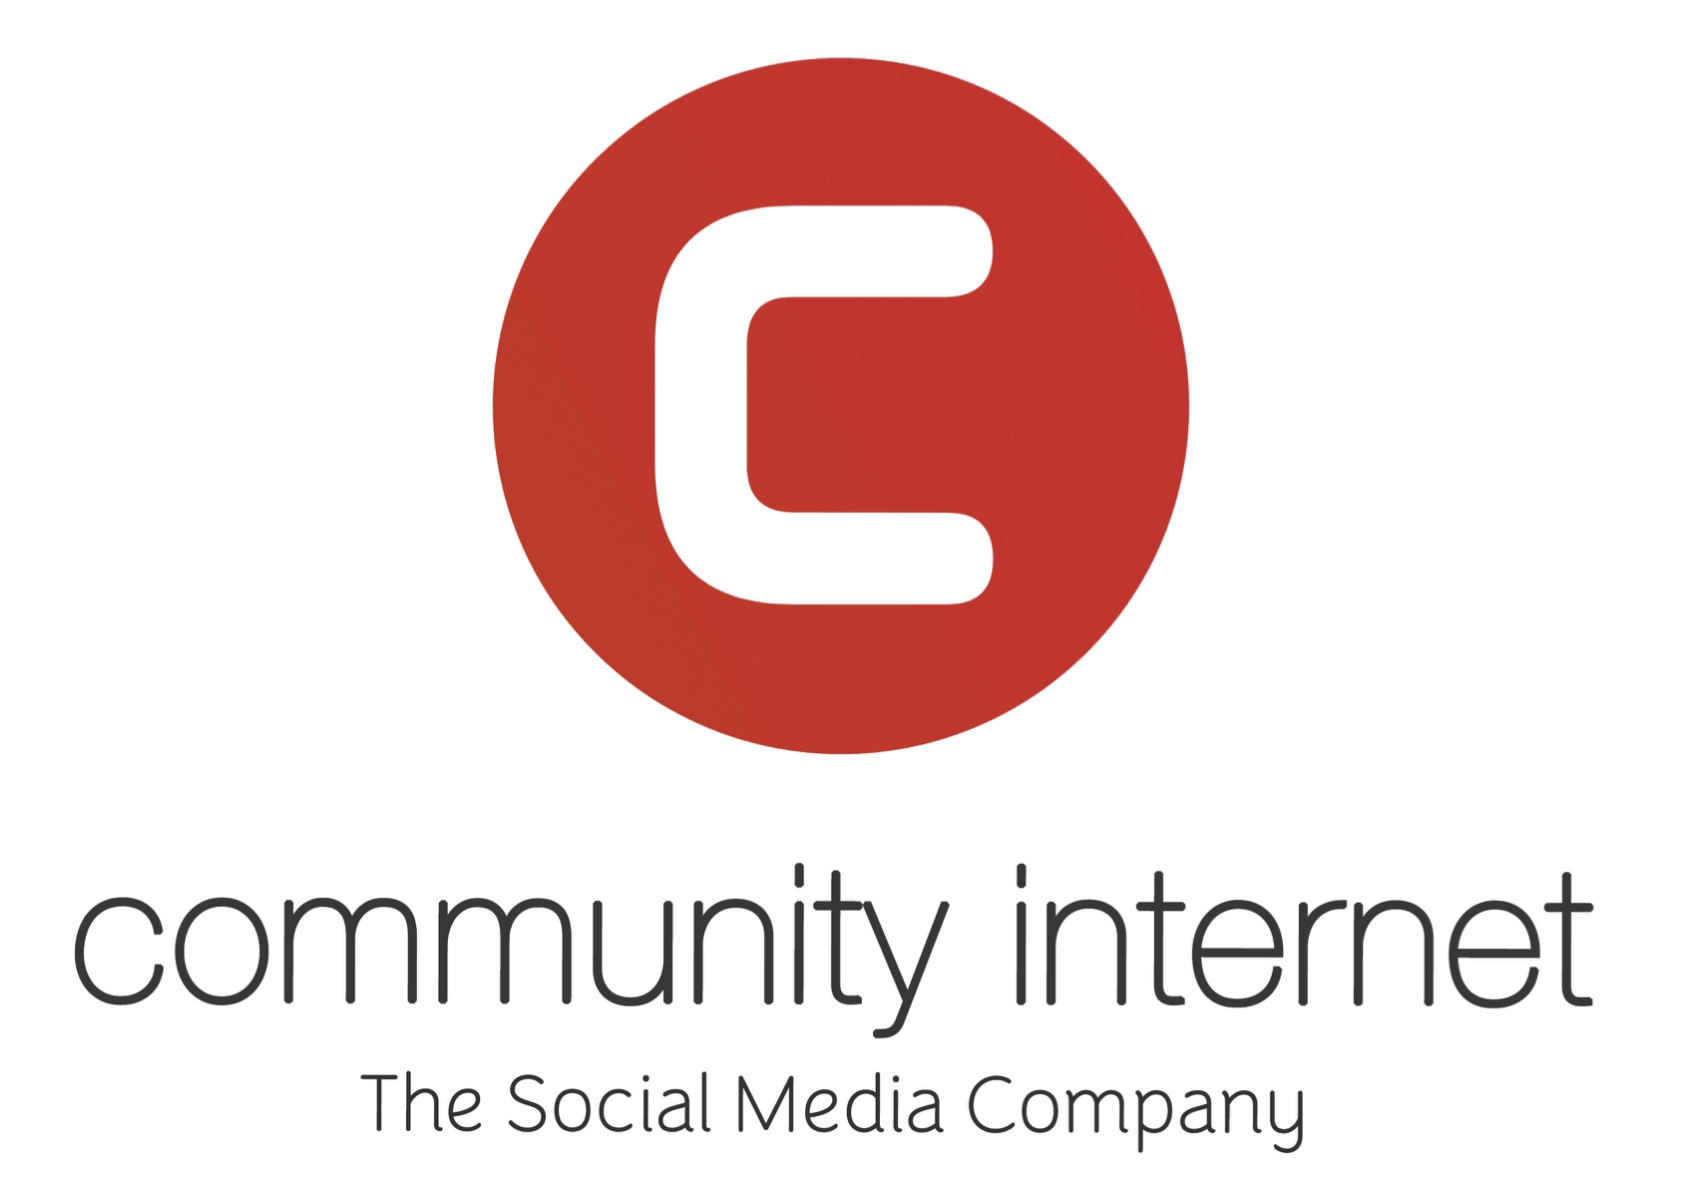 Community internet logo